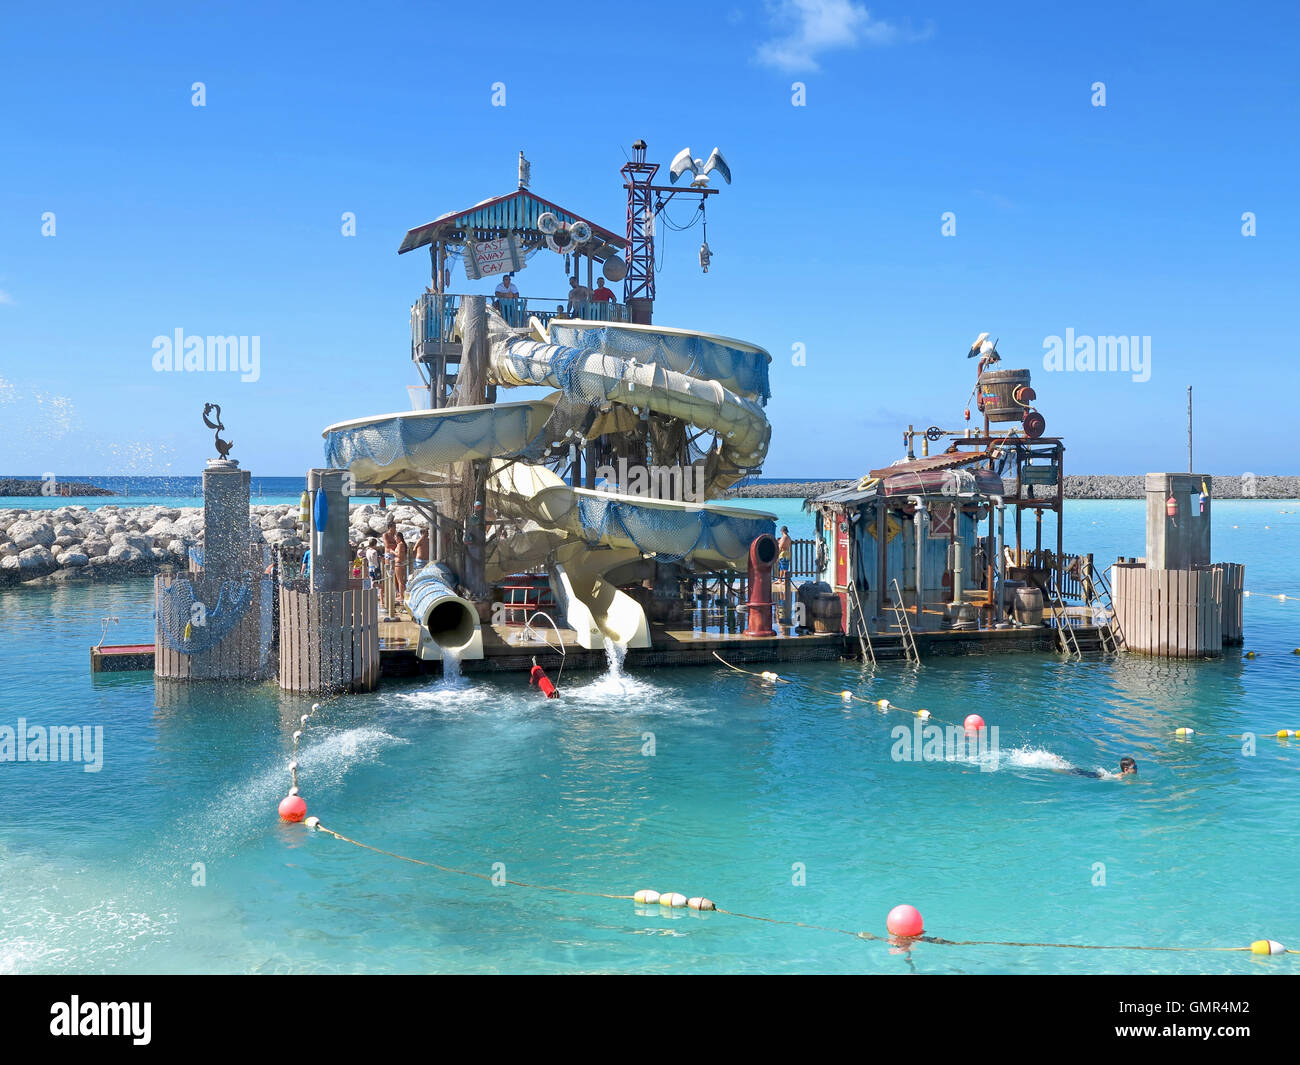 Castaway Cay, Bahamas. January 29th, 2013. Pelican Plunge water slides at Castaway Cay, Disney Cruise private island. - Stock Image